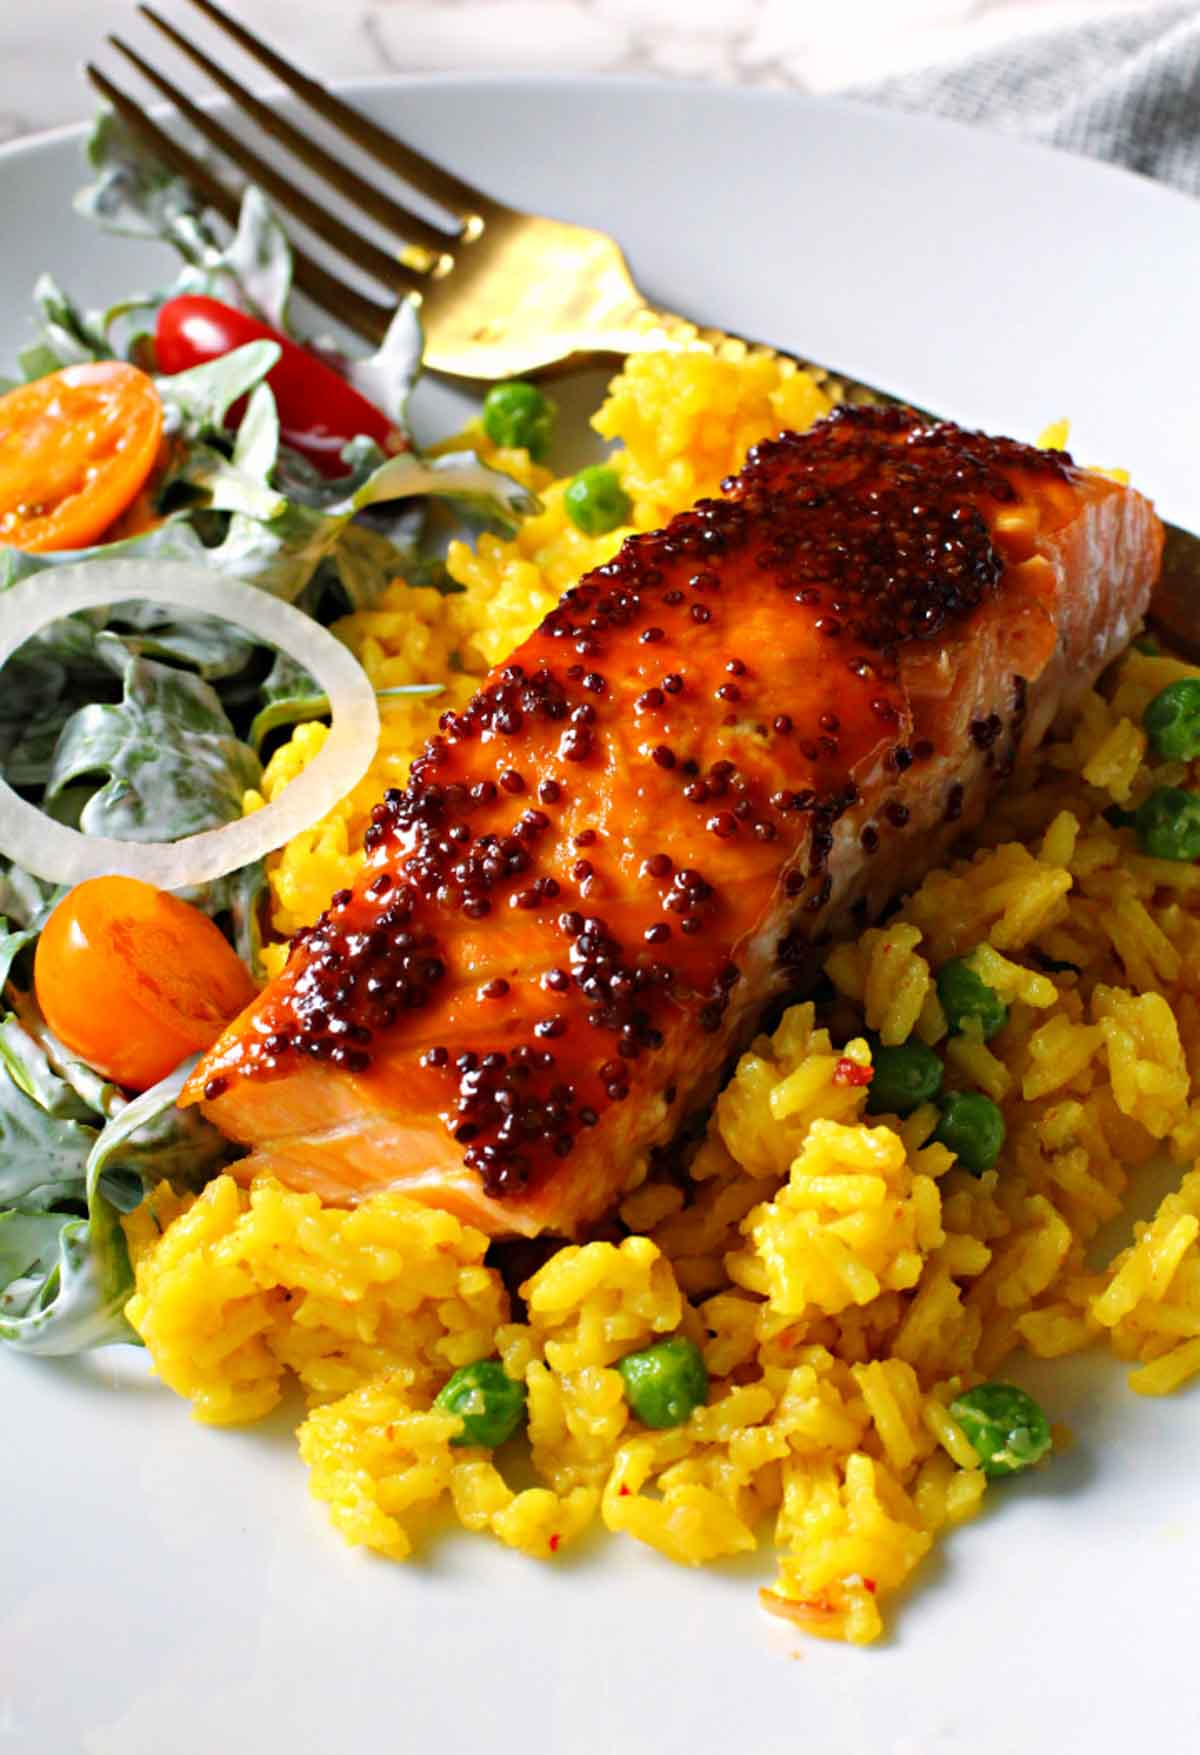 Salmon fillet glazed with maple syrup and dijon country mustard. Served over yellow rice and sided with a tossed salad with buttermilk ranch dressing